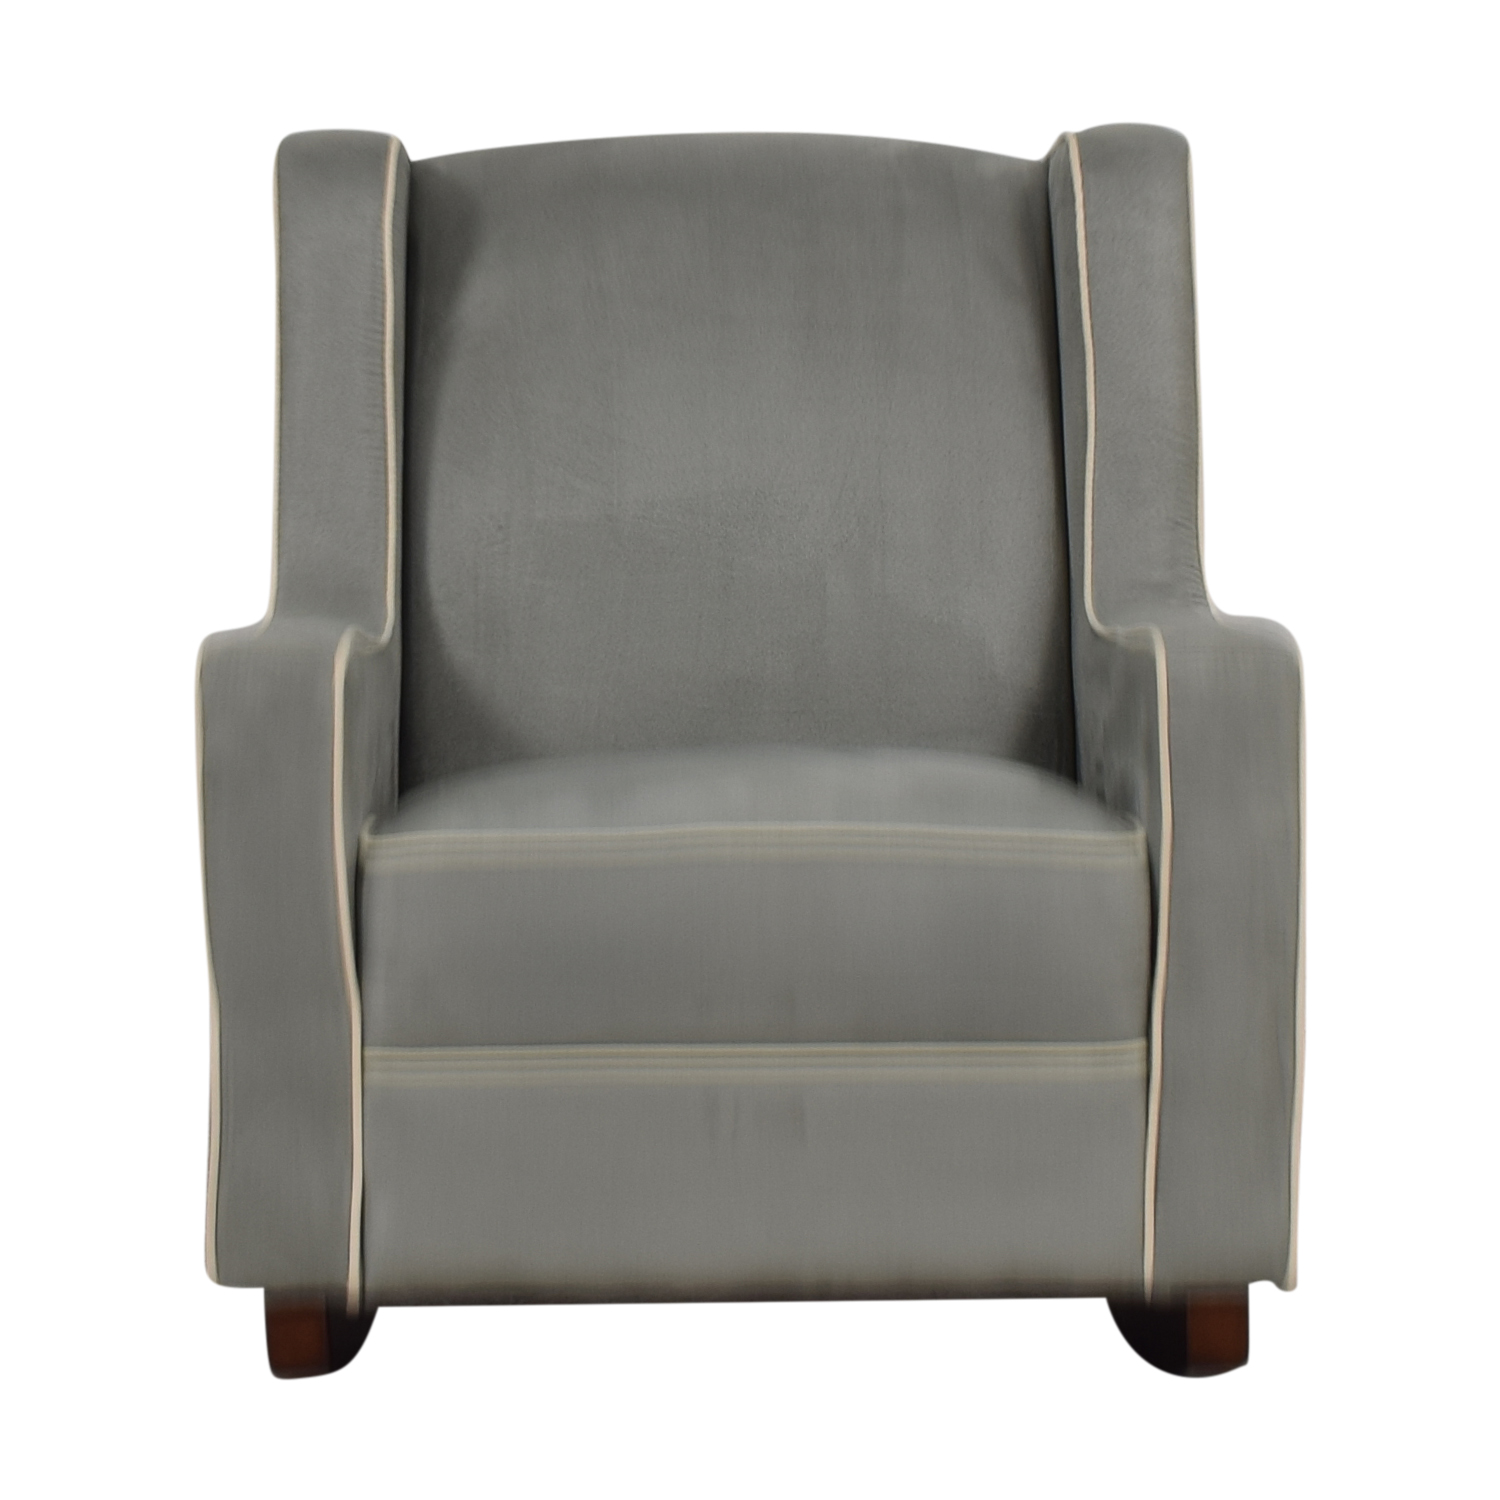 Viv + Rae Sanders Viv + Rae Sanders Grey with Beige Piping Compact Plush Rocking Chair Accent Chairs